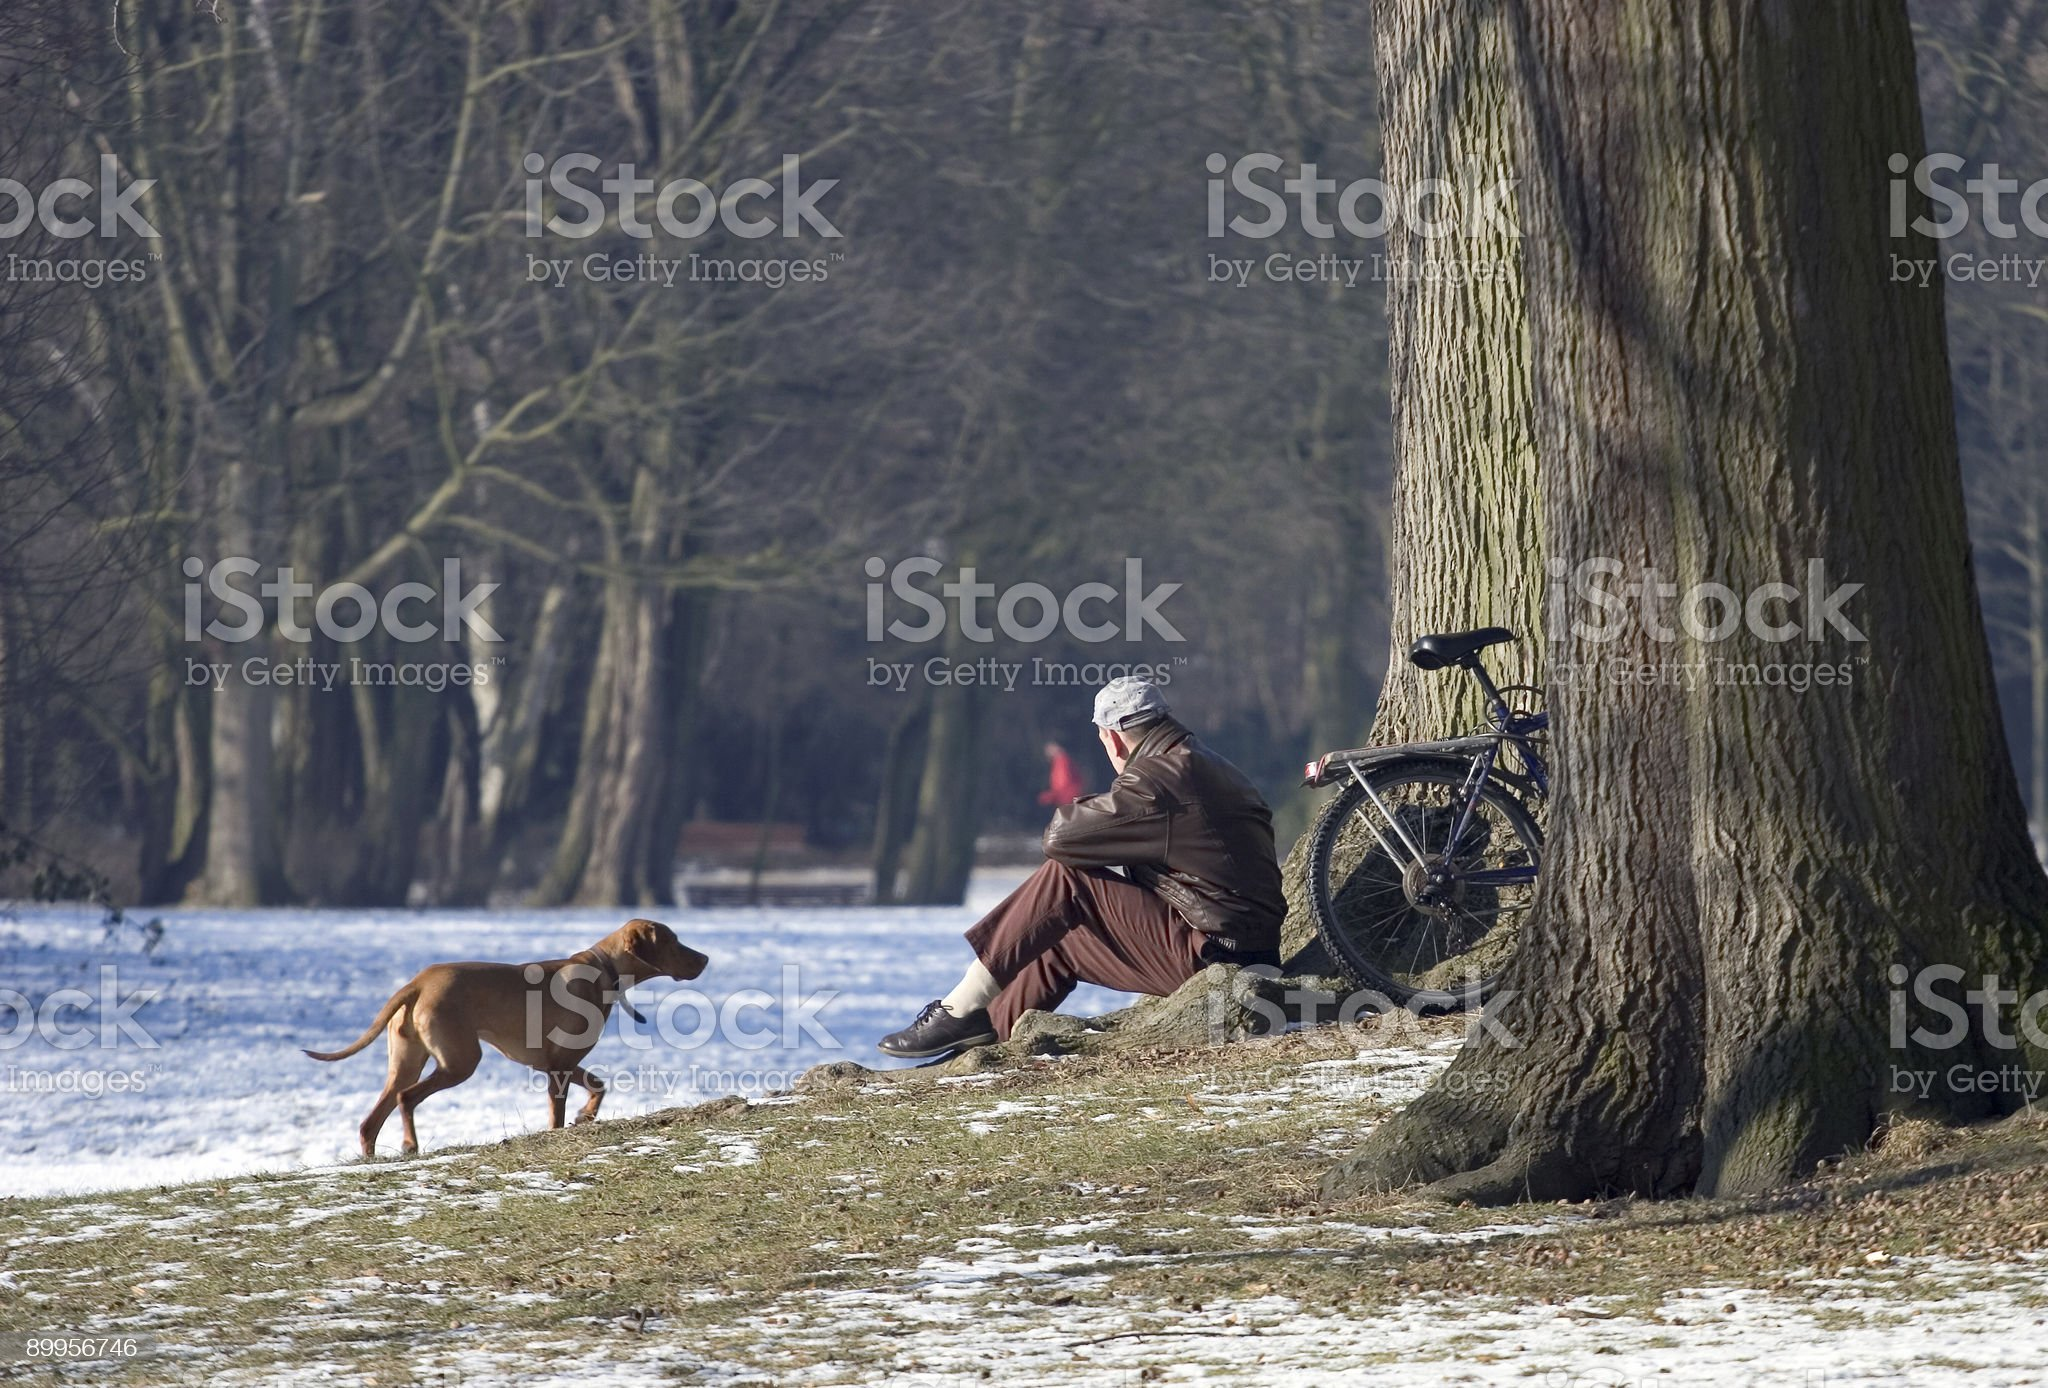 Relaxing in Park royalty-free stock photo